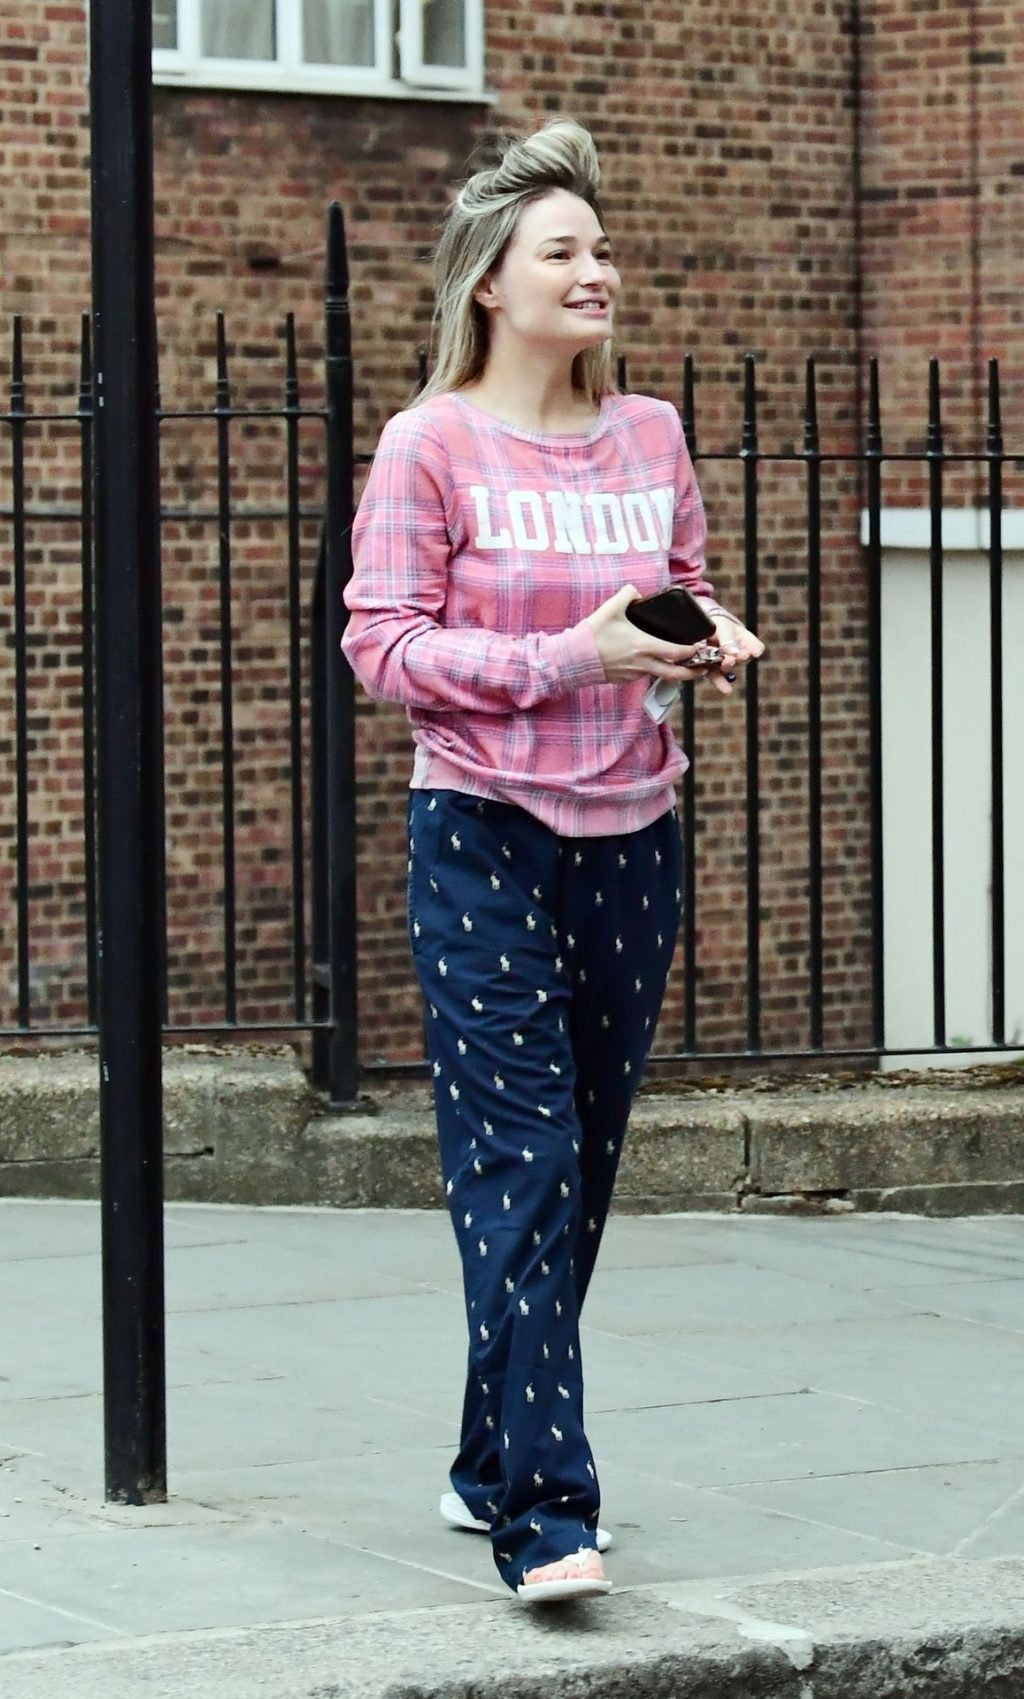 Emma Rigby Goes Braless Out in London (25 Photos)